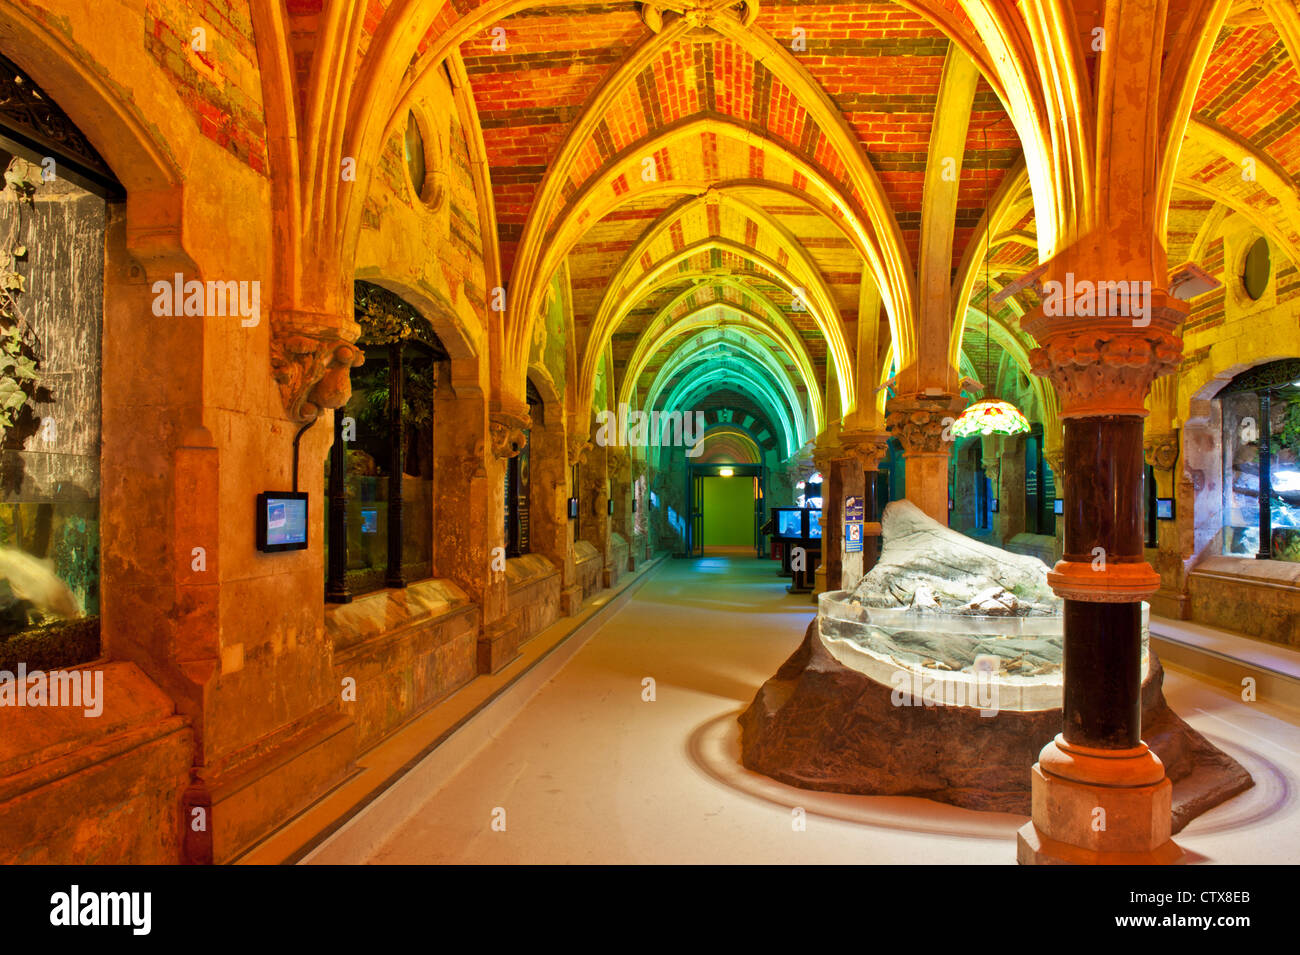 The recently refurbished Sea Life Centre, Brighton, East Sussex, UK showing the magnificent brick work vaulted ceiling - Stock Image